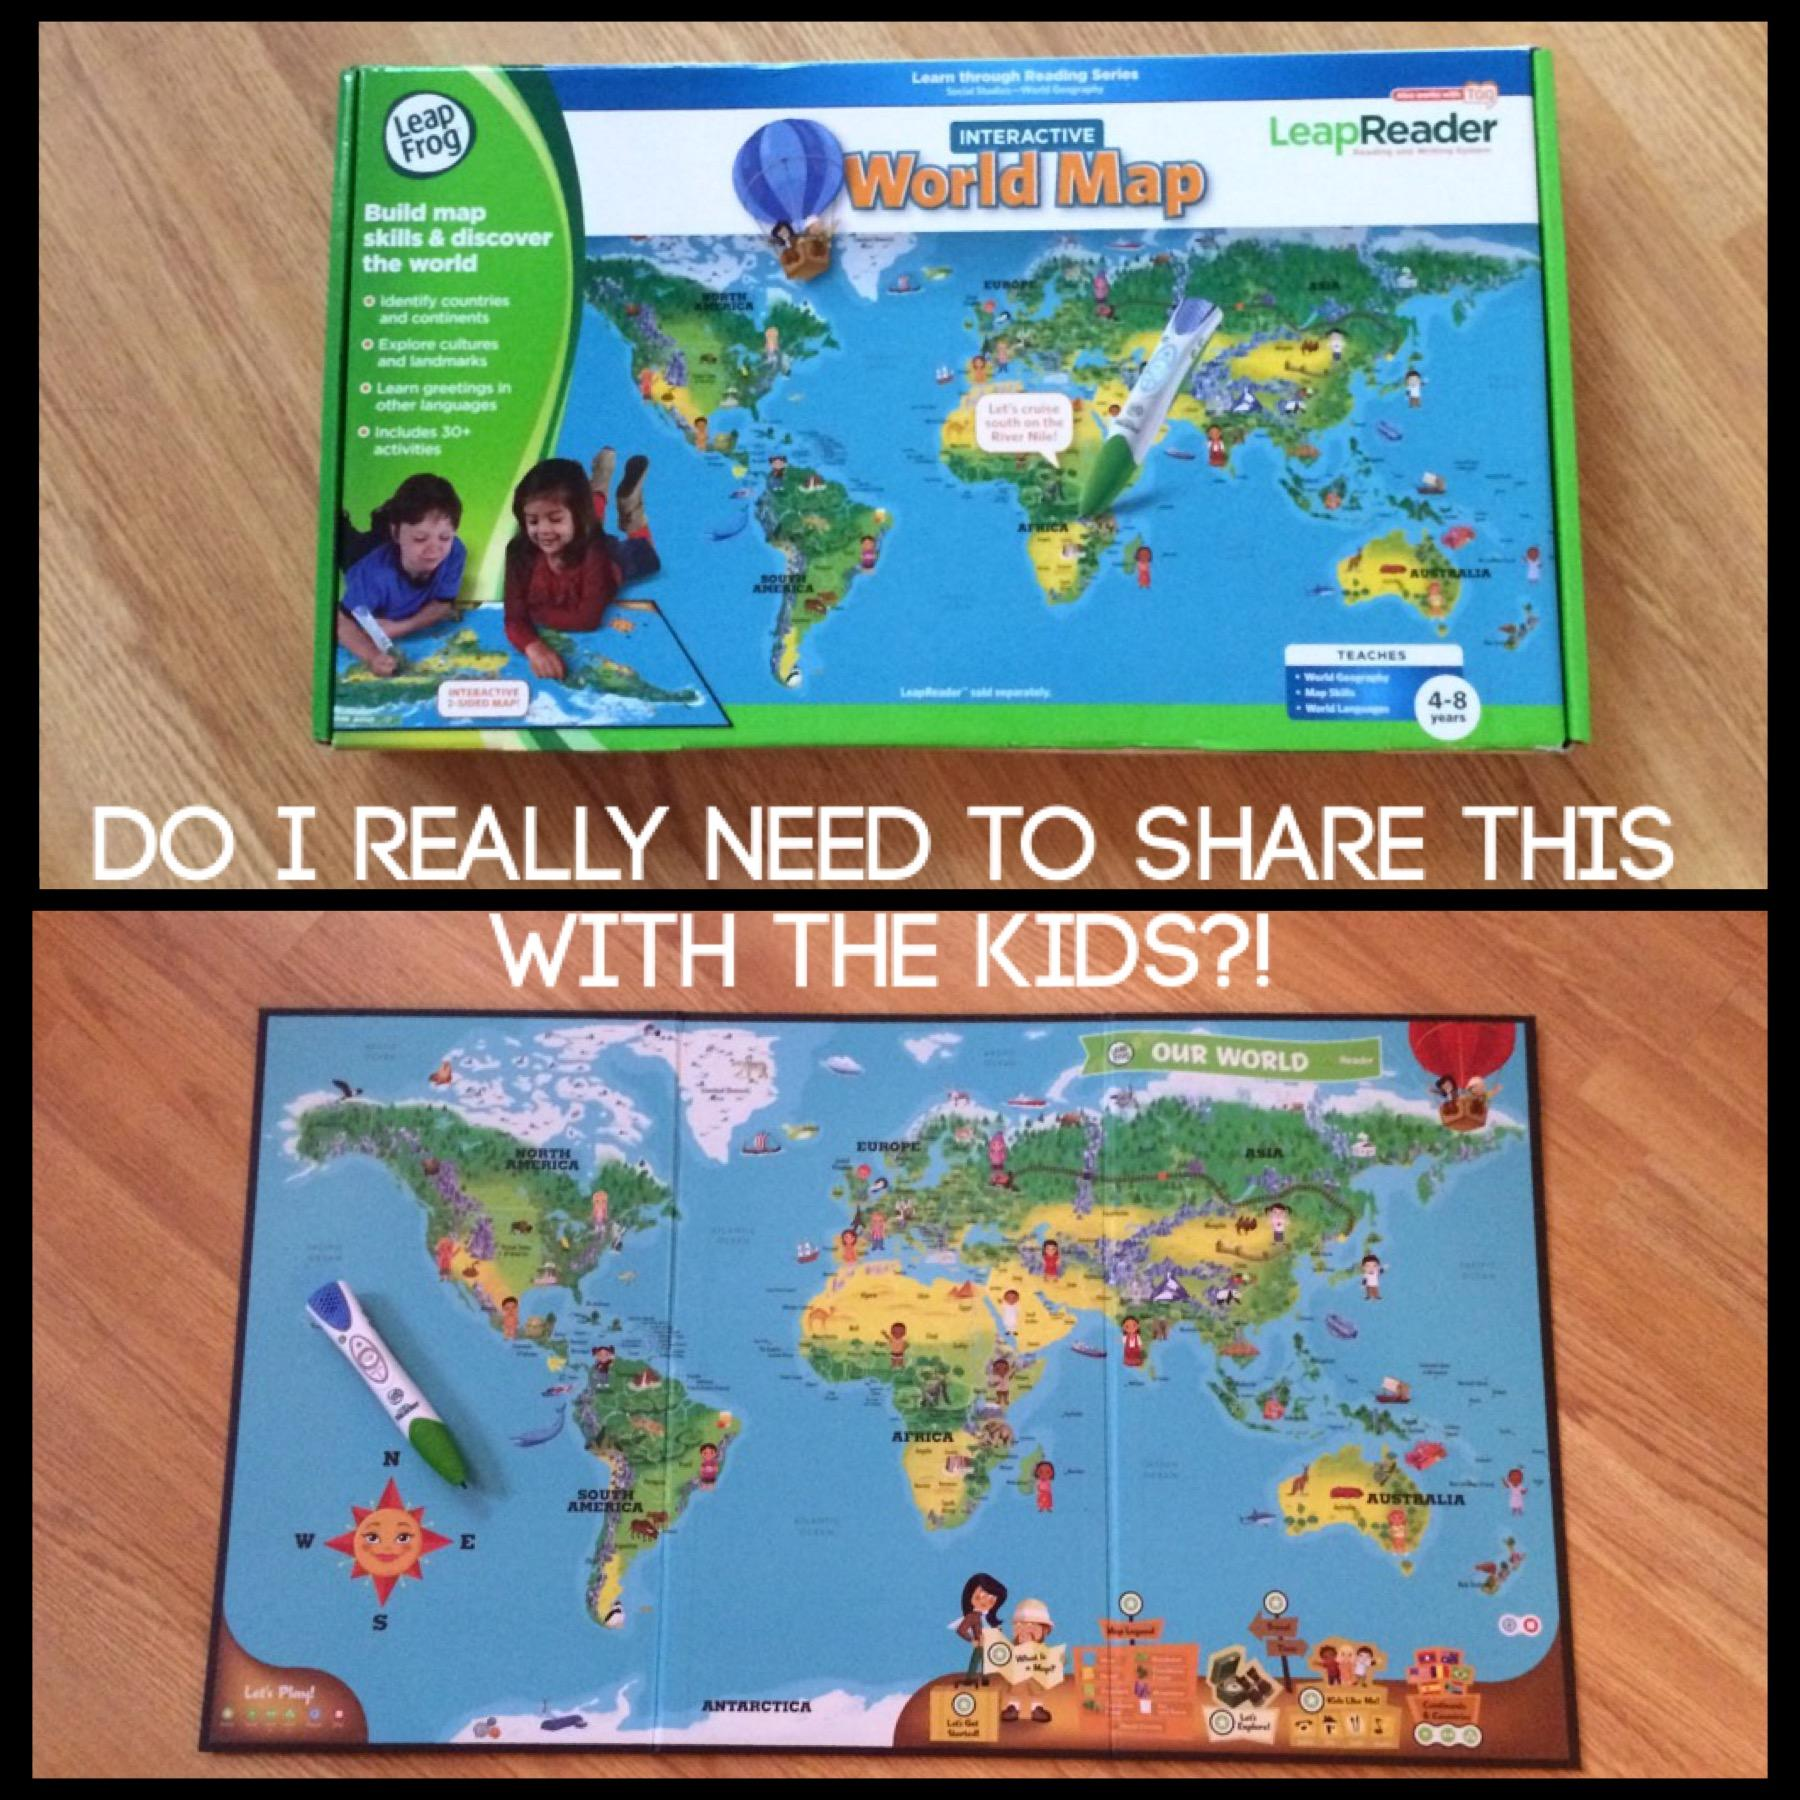 Leapfrog leapreader interactive world map mothergeek before you can play with the interactive world map you have to install the data onto your leapreader pen this is easy to do but its best to do it before gumiabroncs